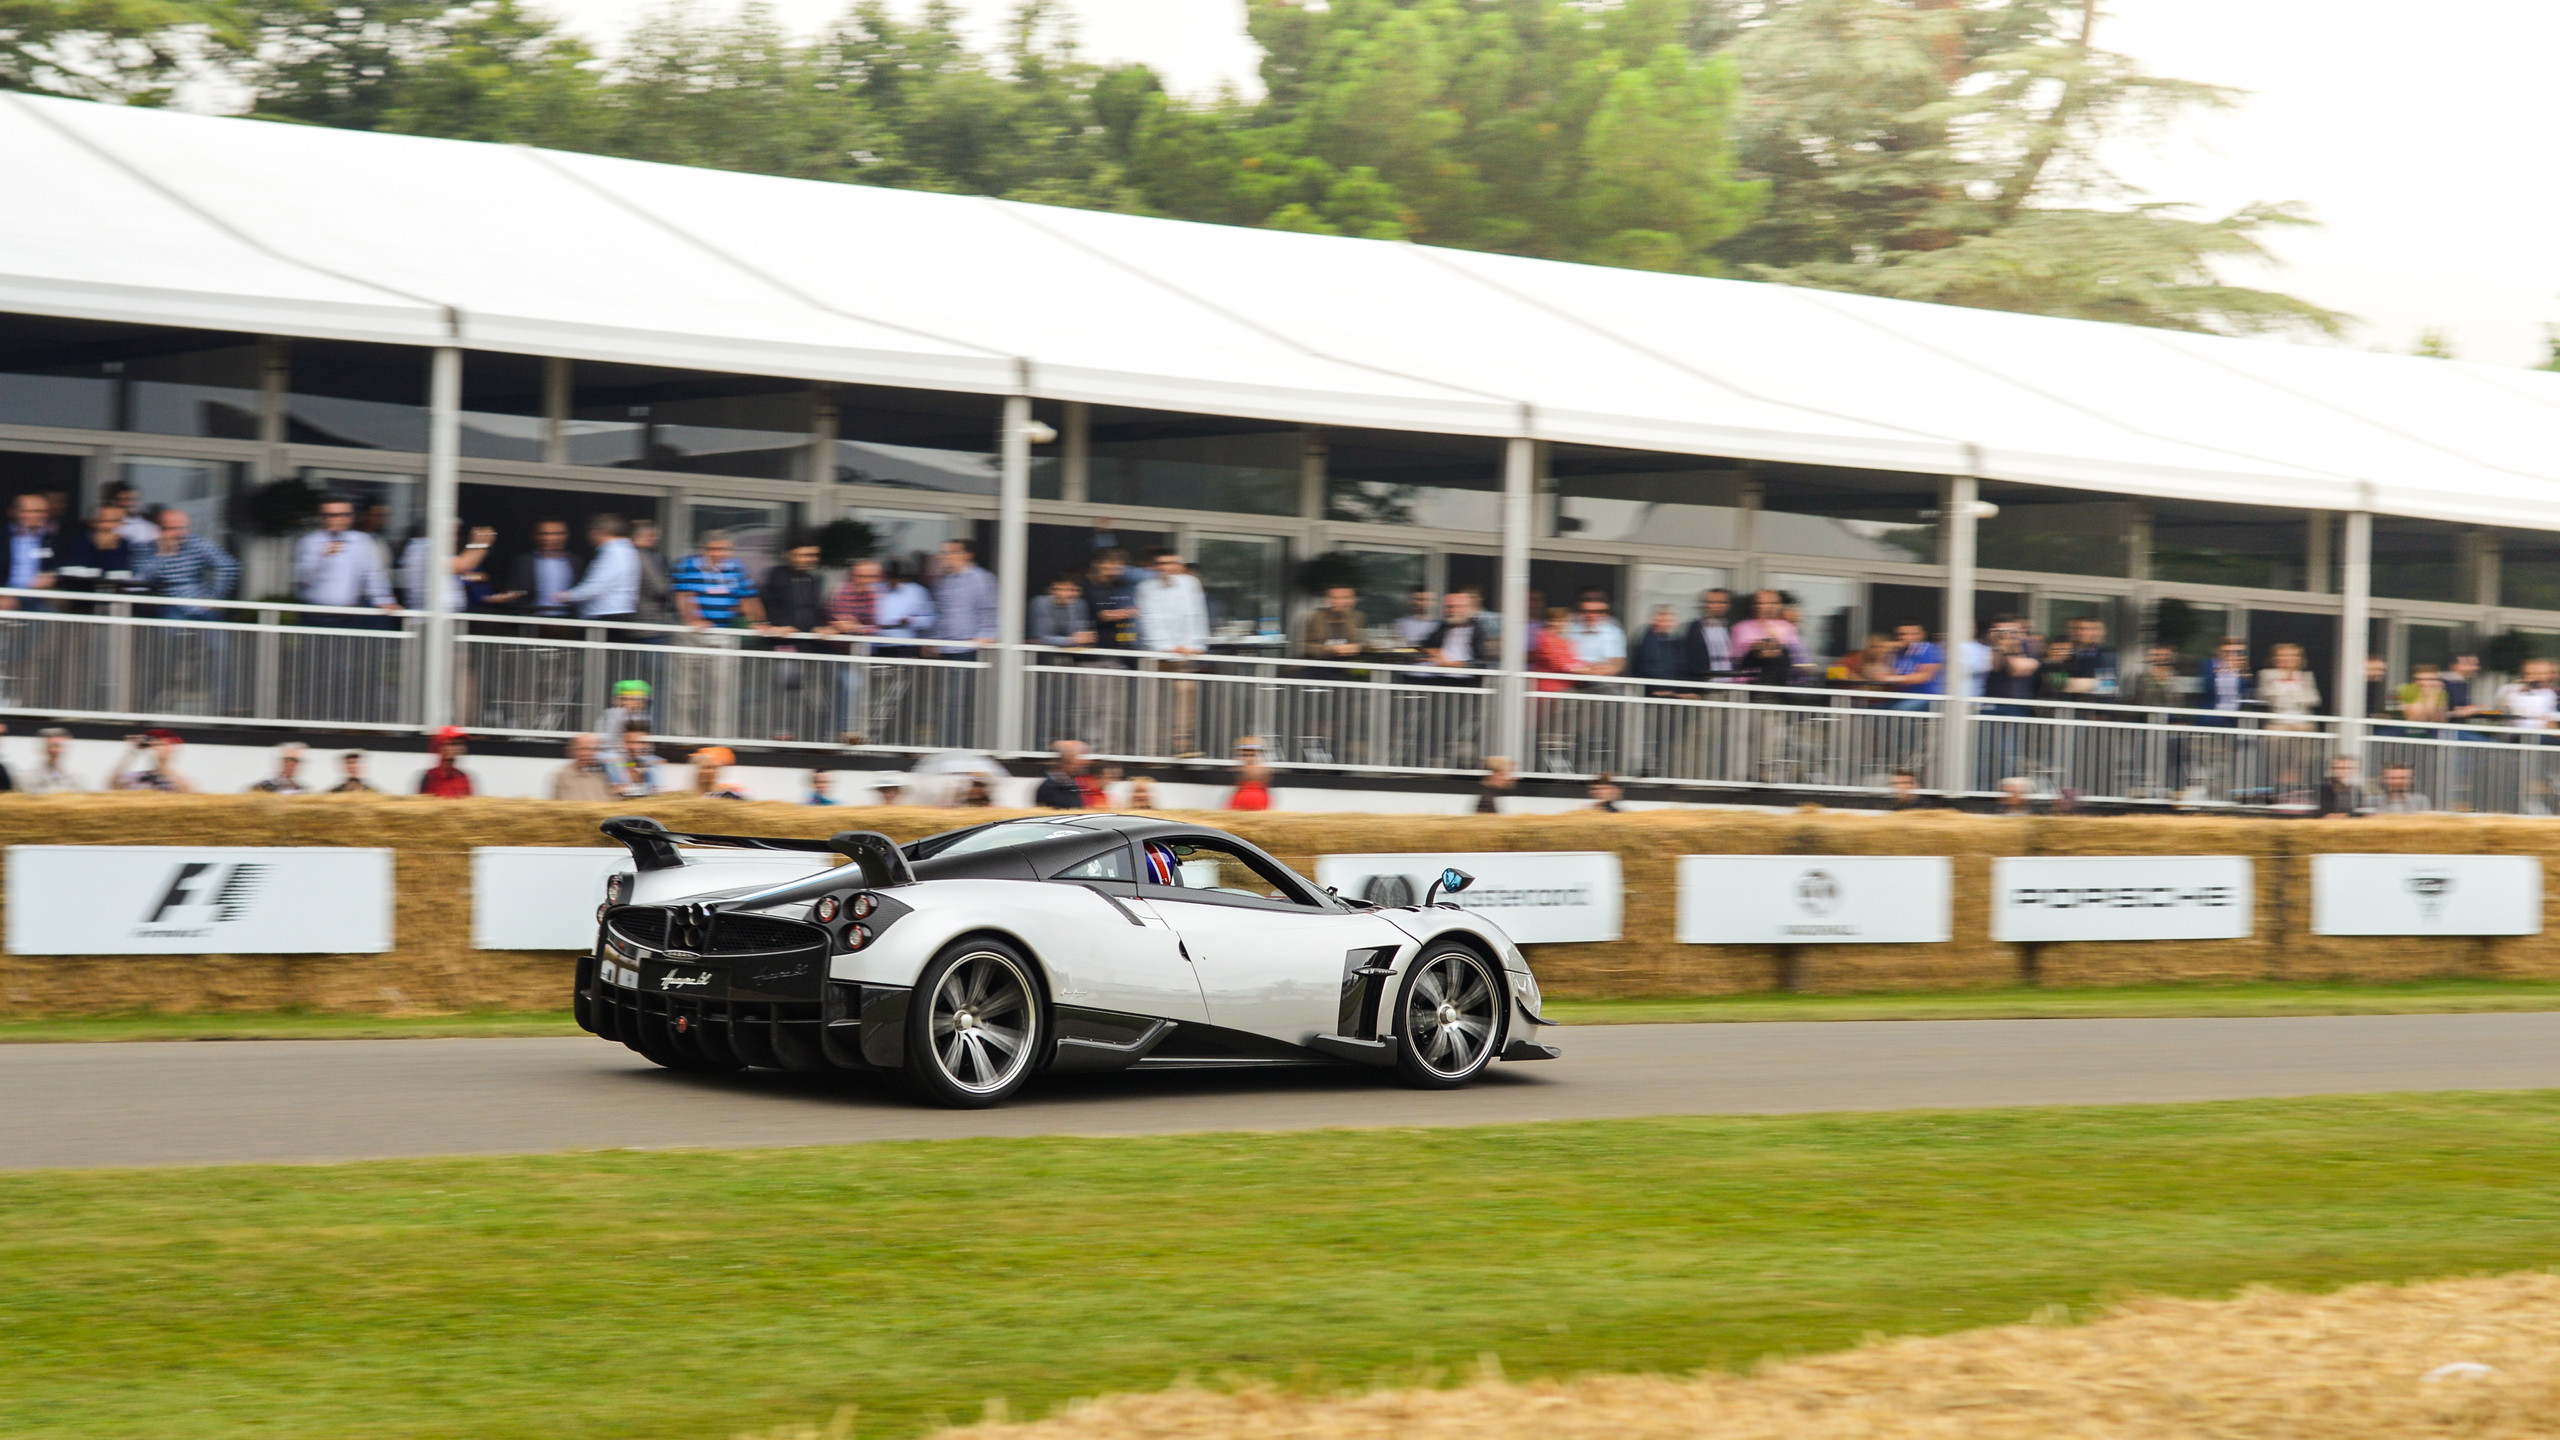 Hurtling up the iconic Goodwood hillclimb earlier this year